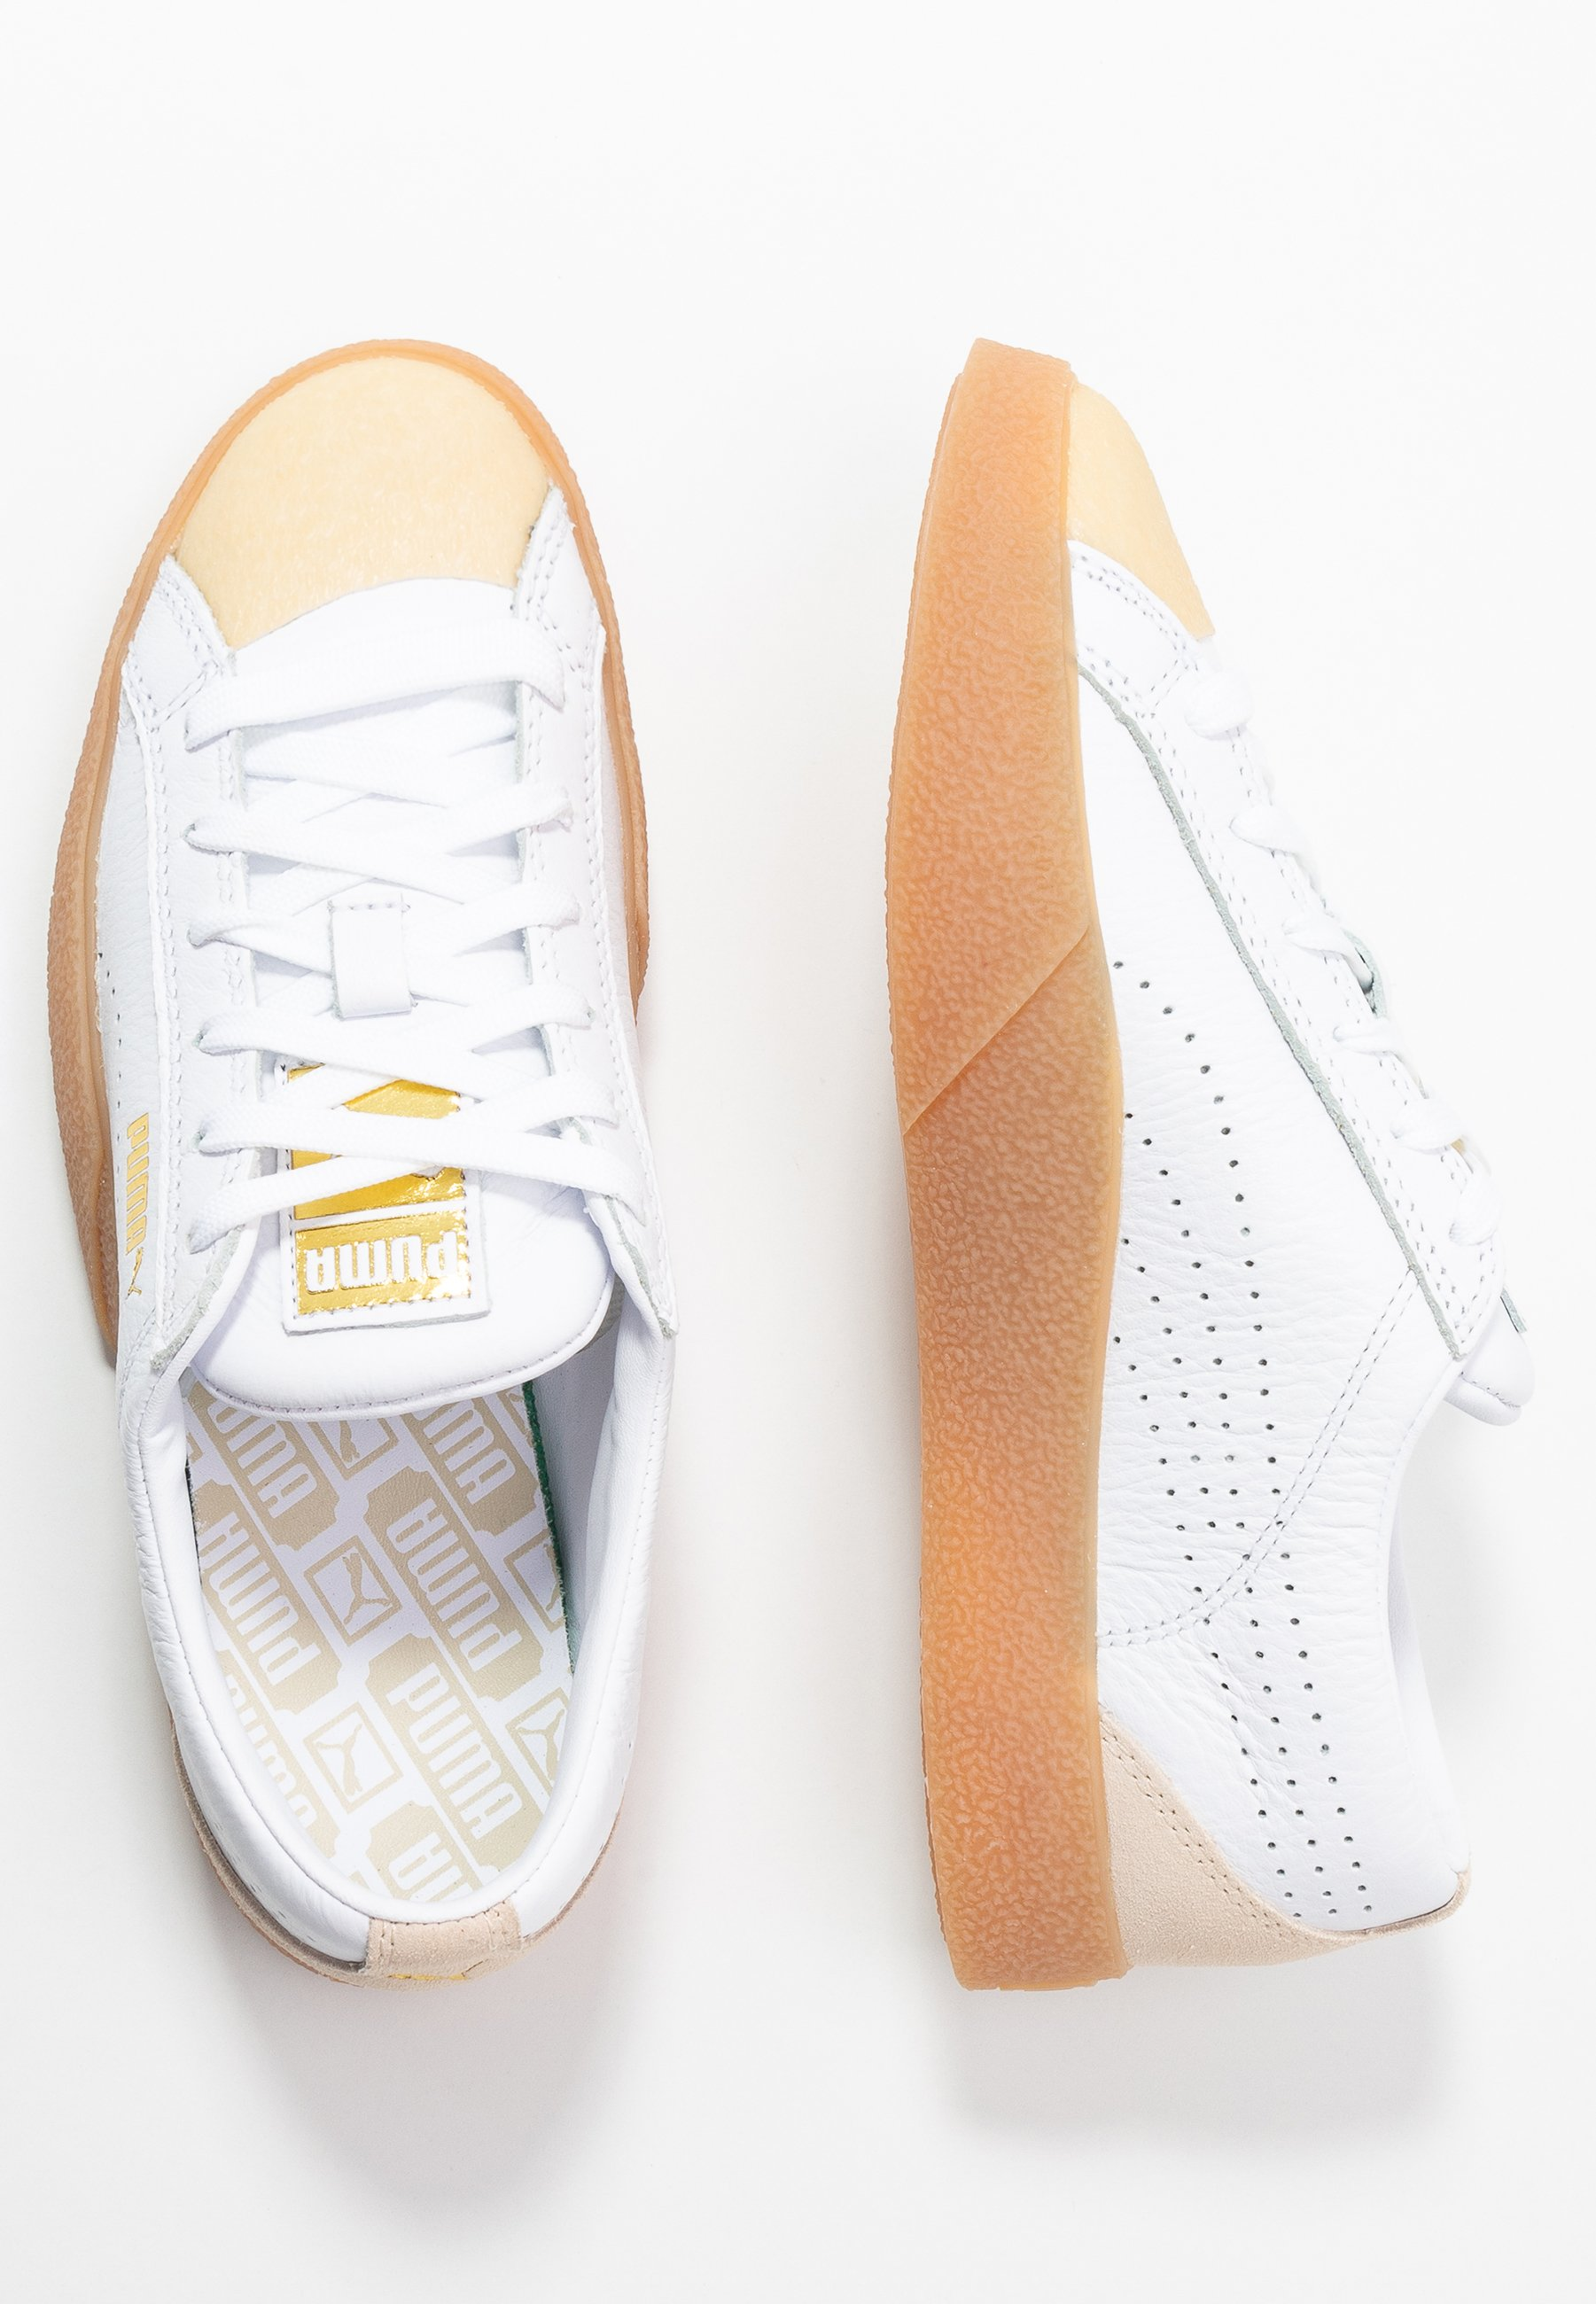 Puma Love Grand Slam - Sneakers White